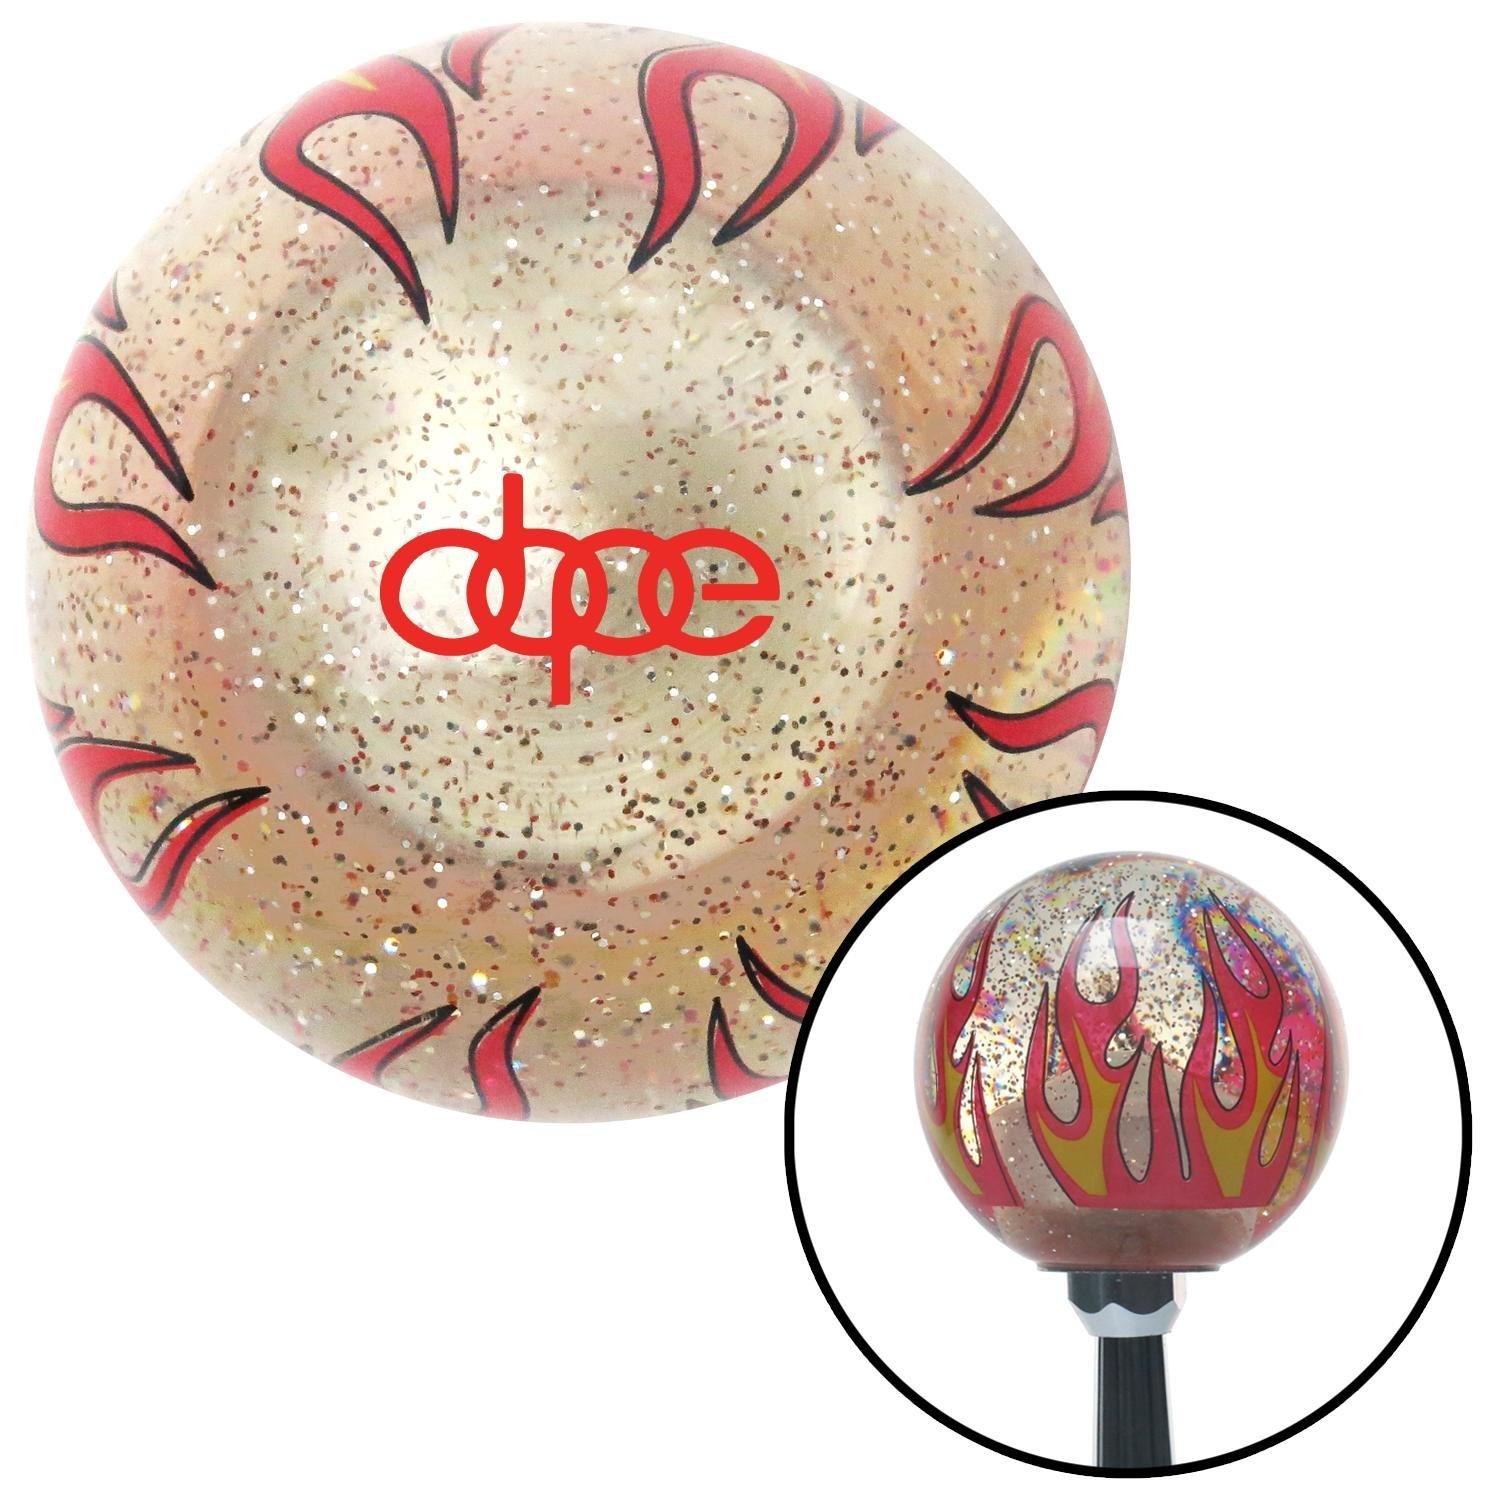 American Shifter 296202 Shift Knob Red Dope Clear Flame Metal Flake with M16 x 1.5 Insert